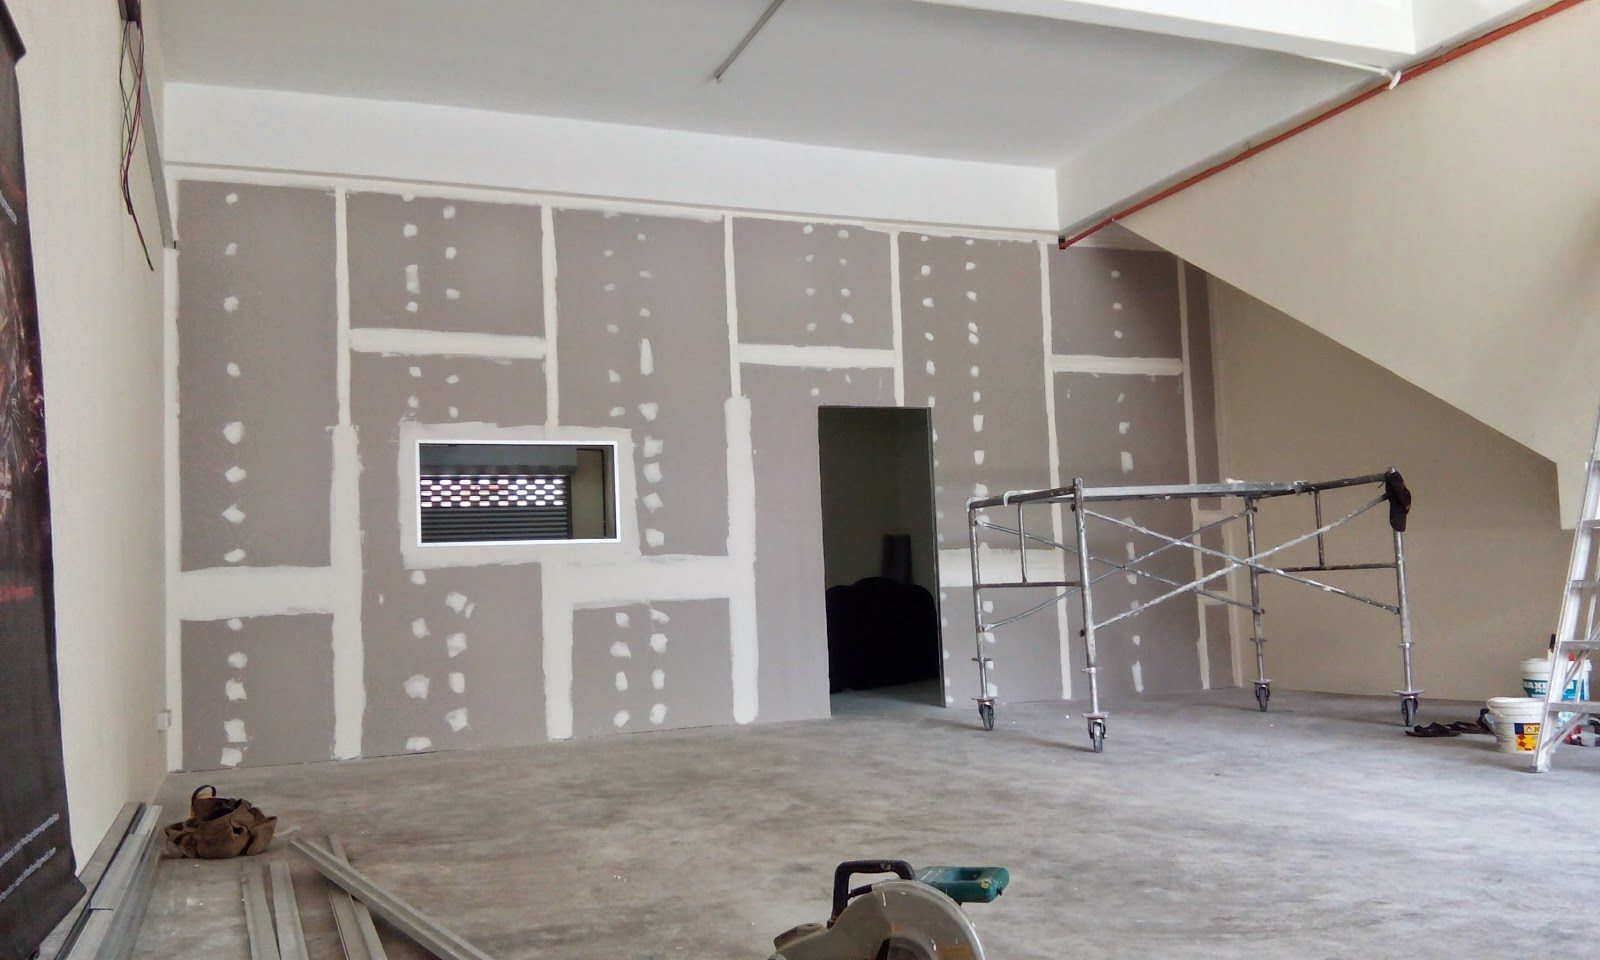 Plaster Ceiling And Wall Drywall Gypsum Construction